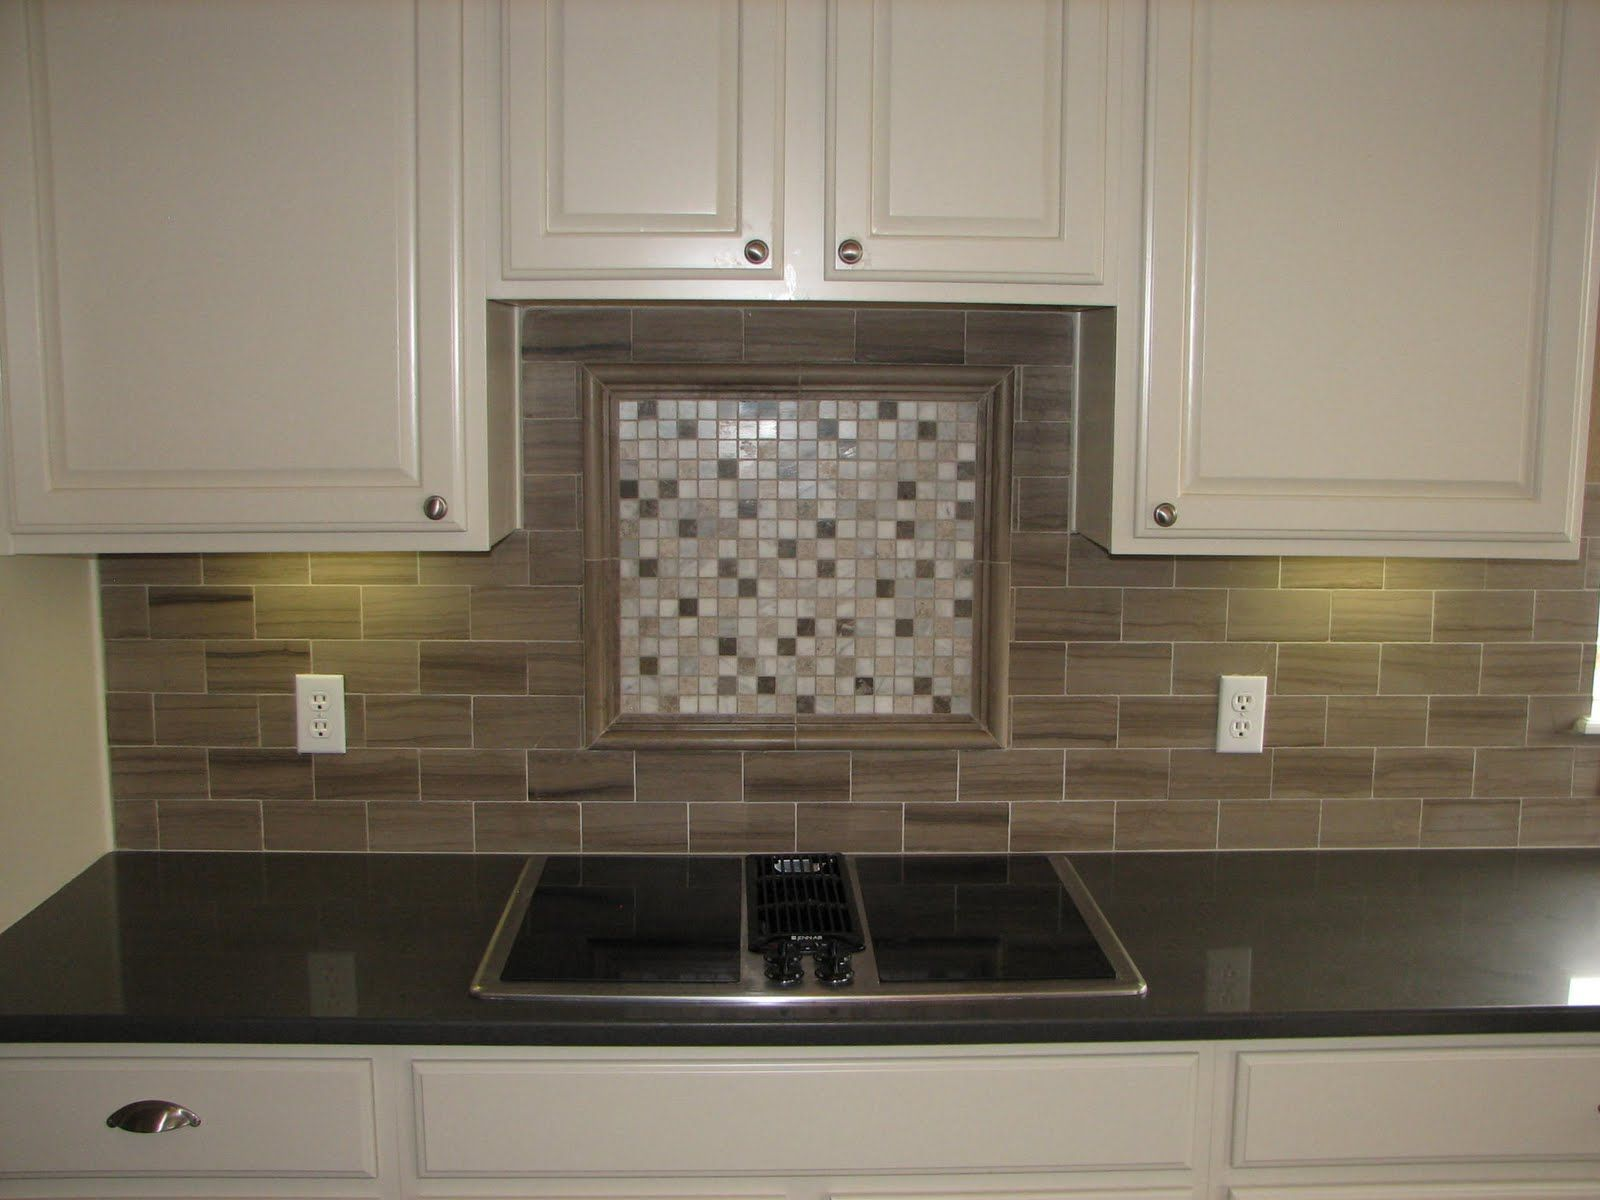 Tile backsplash with black cuntertop ideas tile for Bathroom backsplash ideas